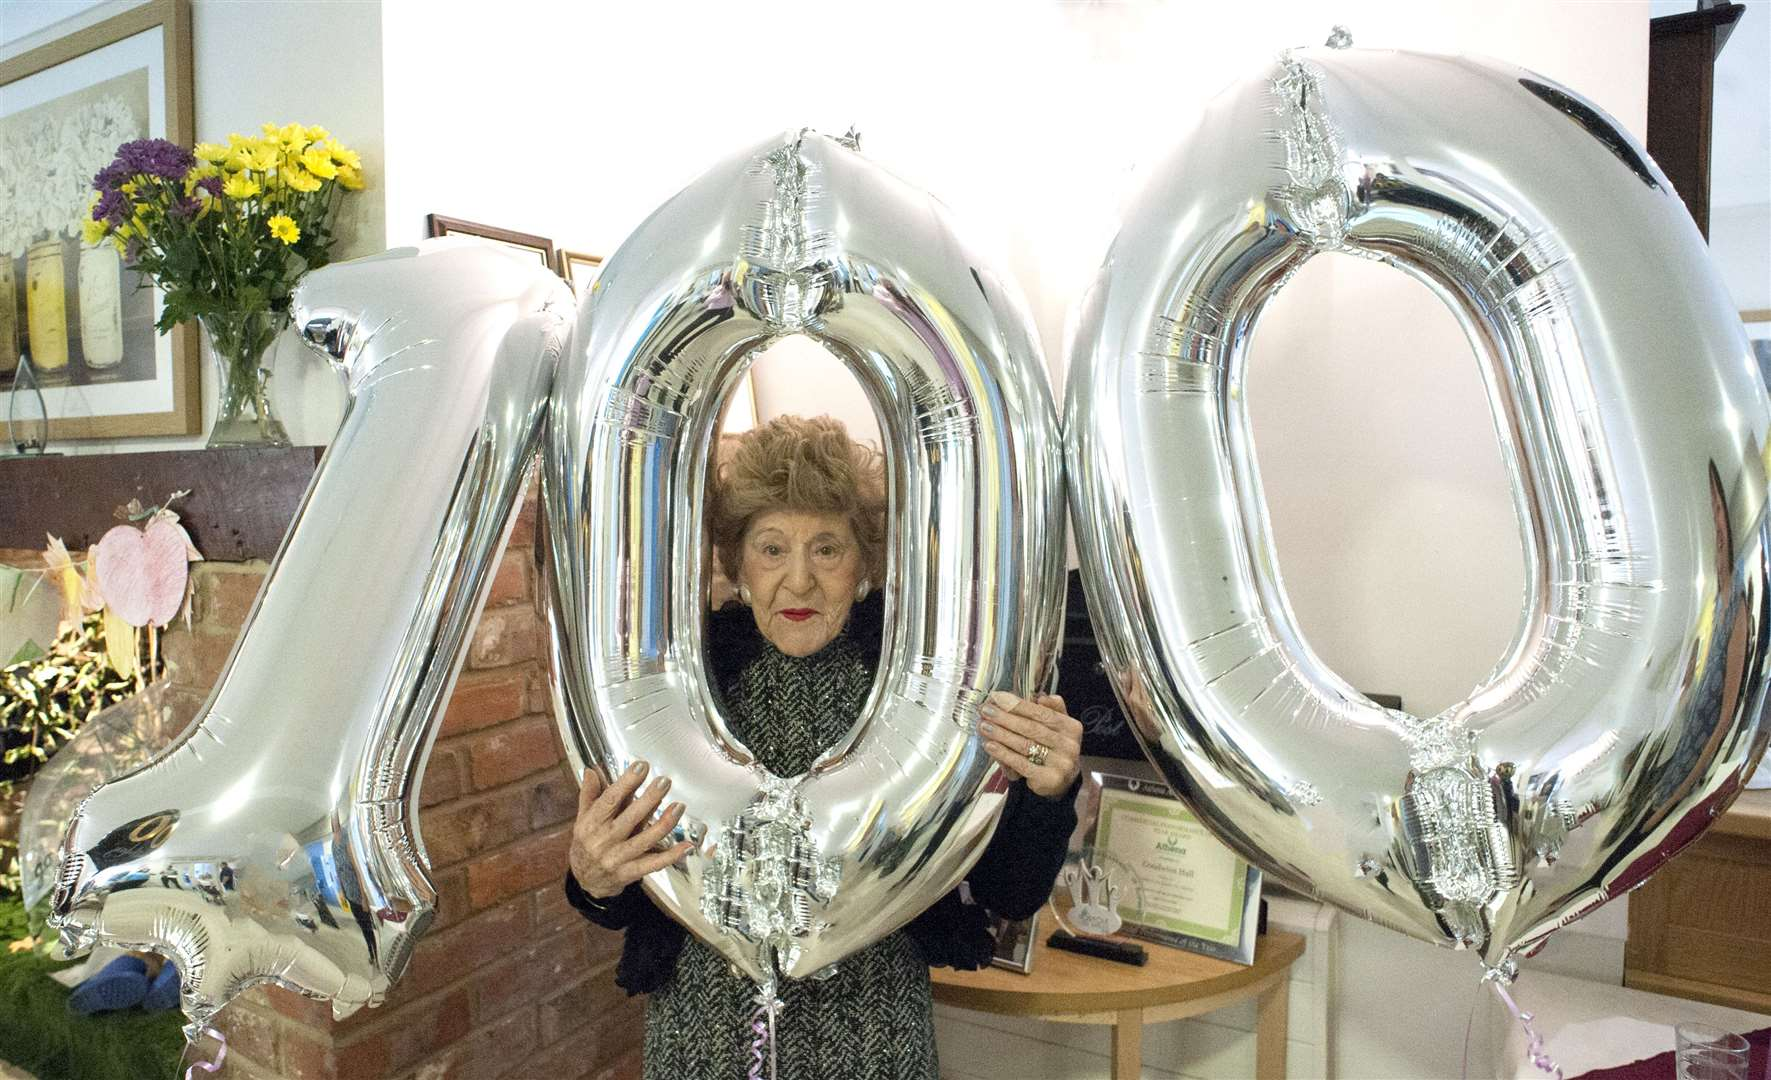 100th Birthday for Joan Phillips, who will be walking on a Boeing Stearman Biplane next month